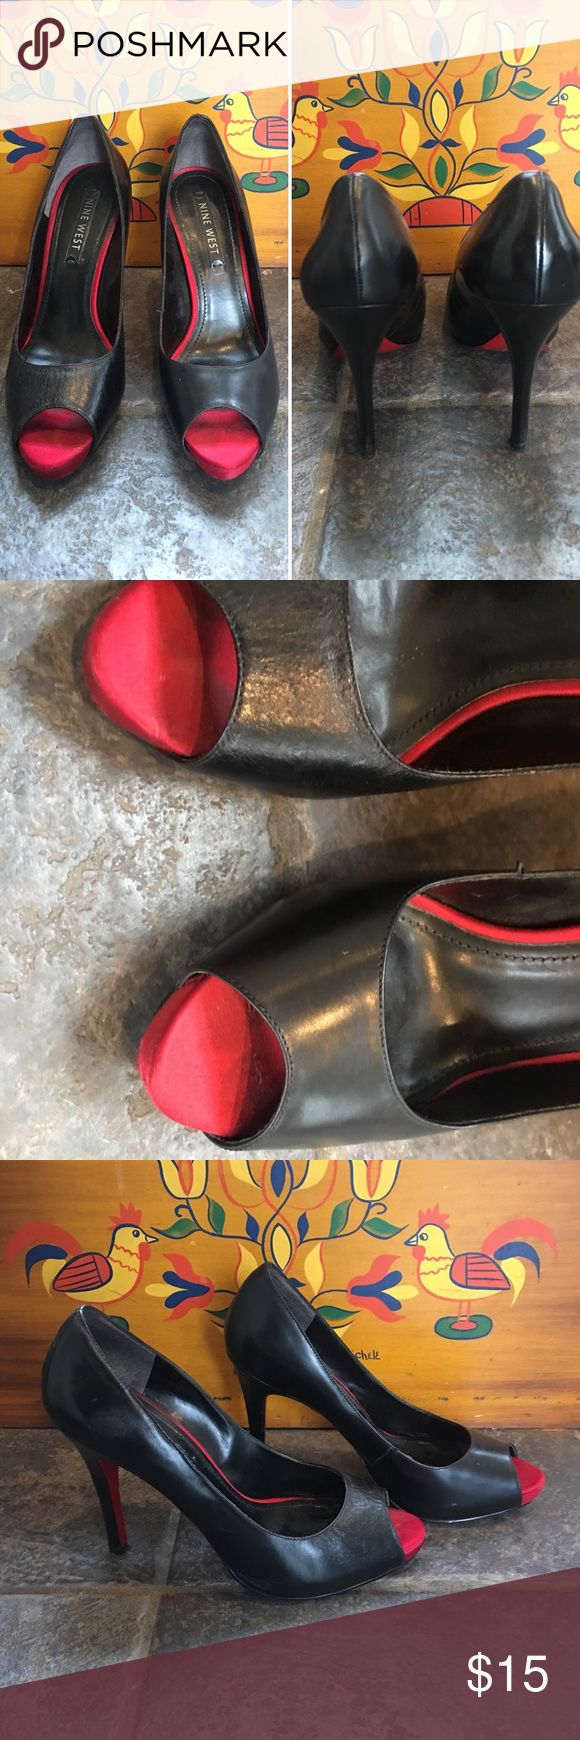 """Nine West black heels w/ red bottoms, sz 6M Item: Nine West black heels with red peep toe & red bottoms, sz 6M Brand: Nine West Tag size: 6M Measurements: 4"""" heel / 3"""" across toe box  ** Some wear, see pictures.    ~measurements are estimations taken in inches on a flat surface Nine West Shoes Heels"""